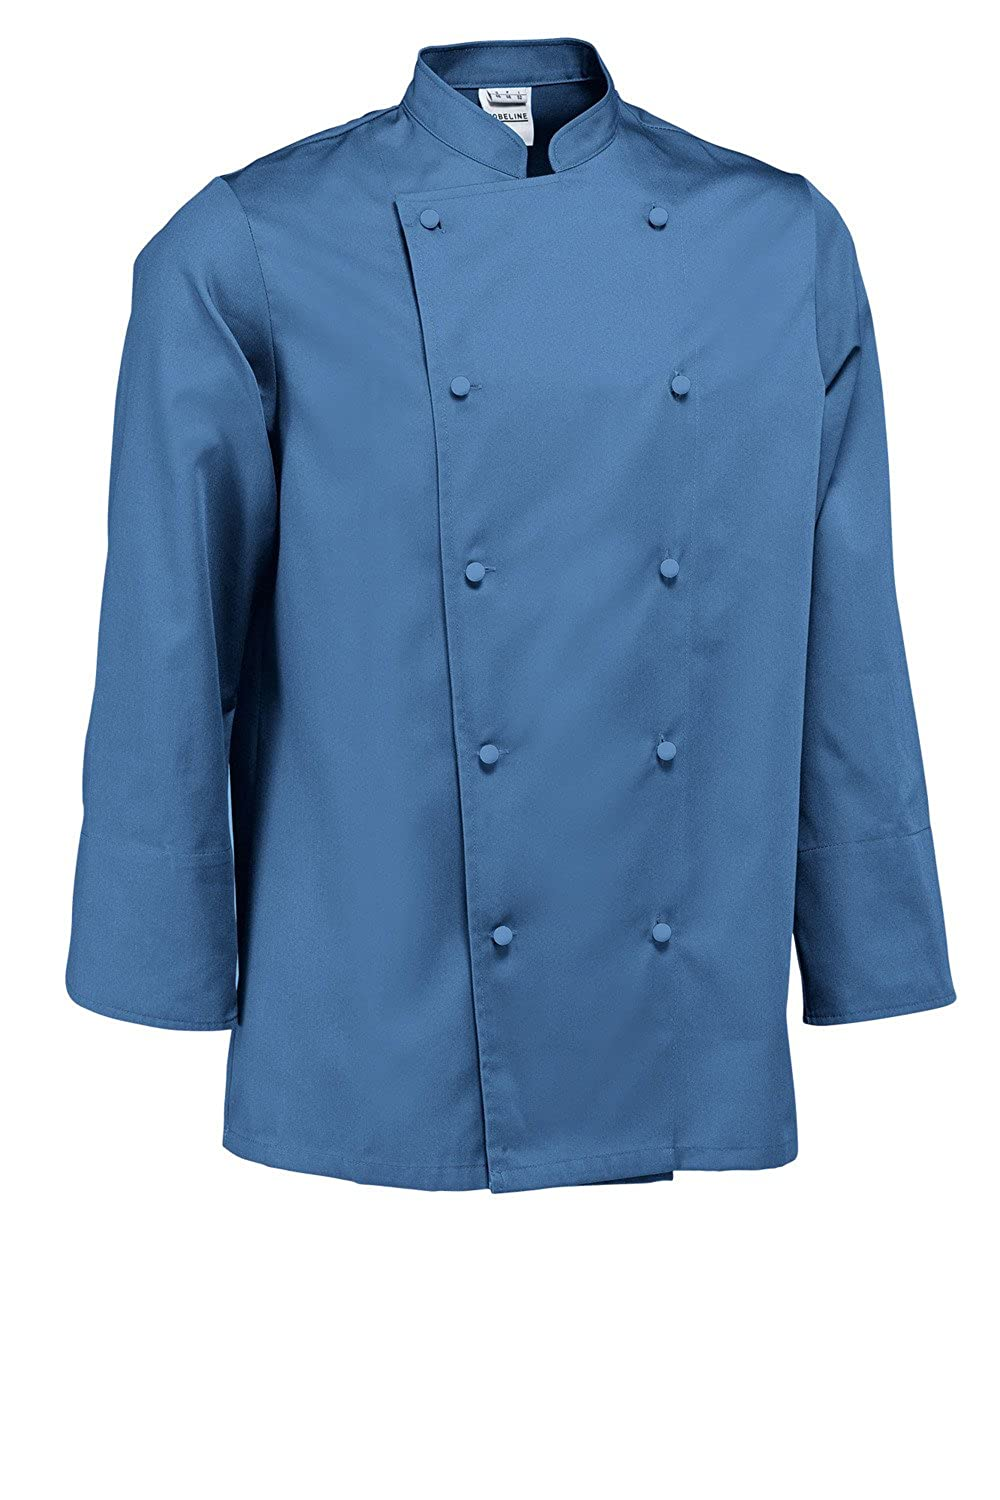 JOBELINE Paolo Series Mens Long Sleeve Chef Jacket Comfortable, Breathable &